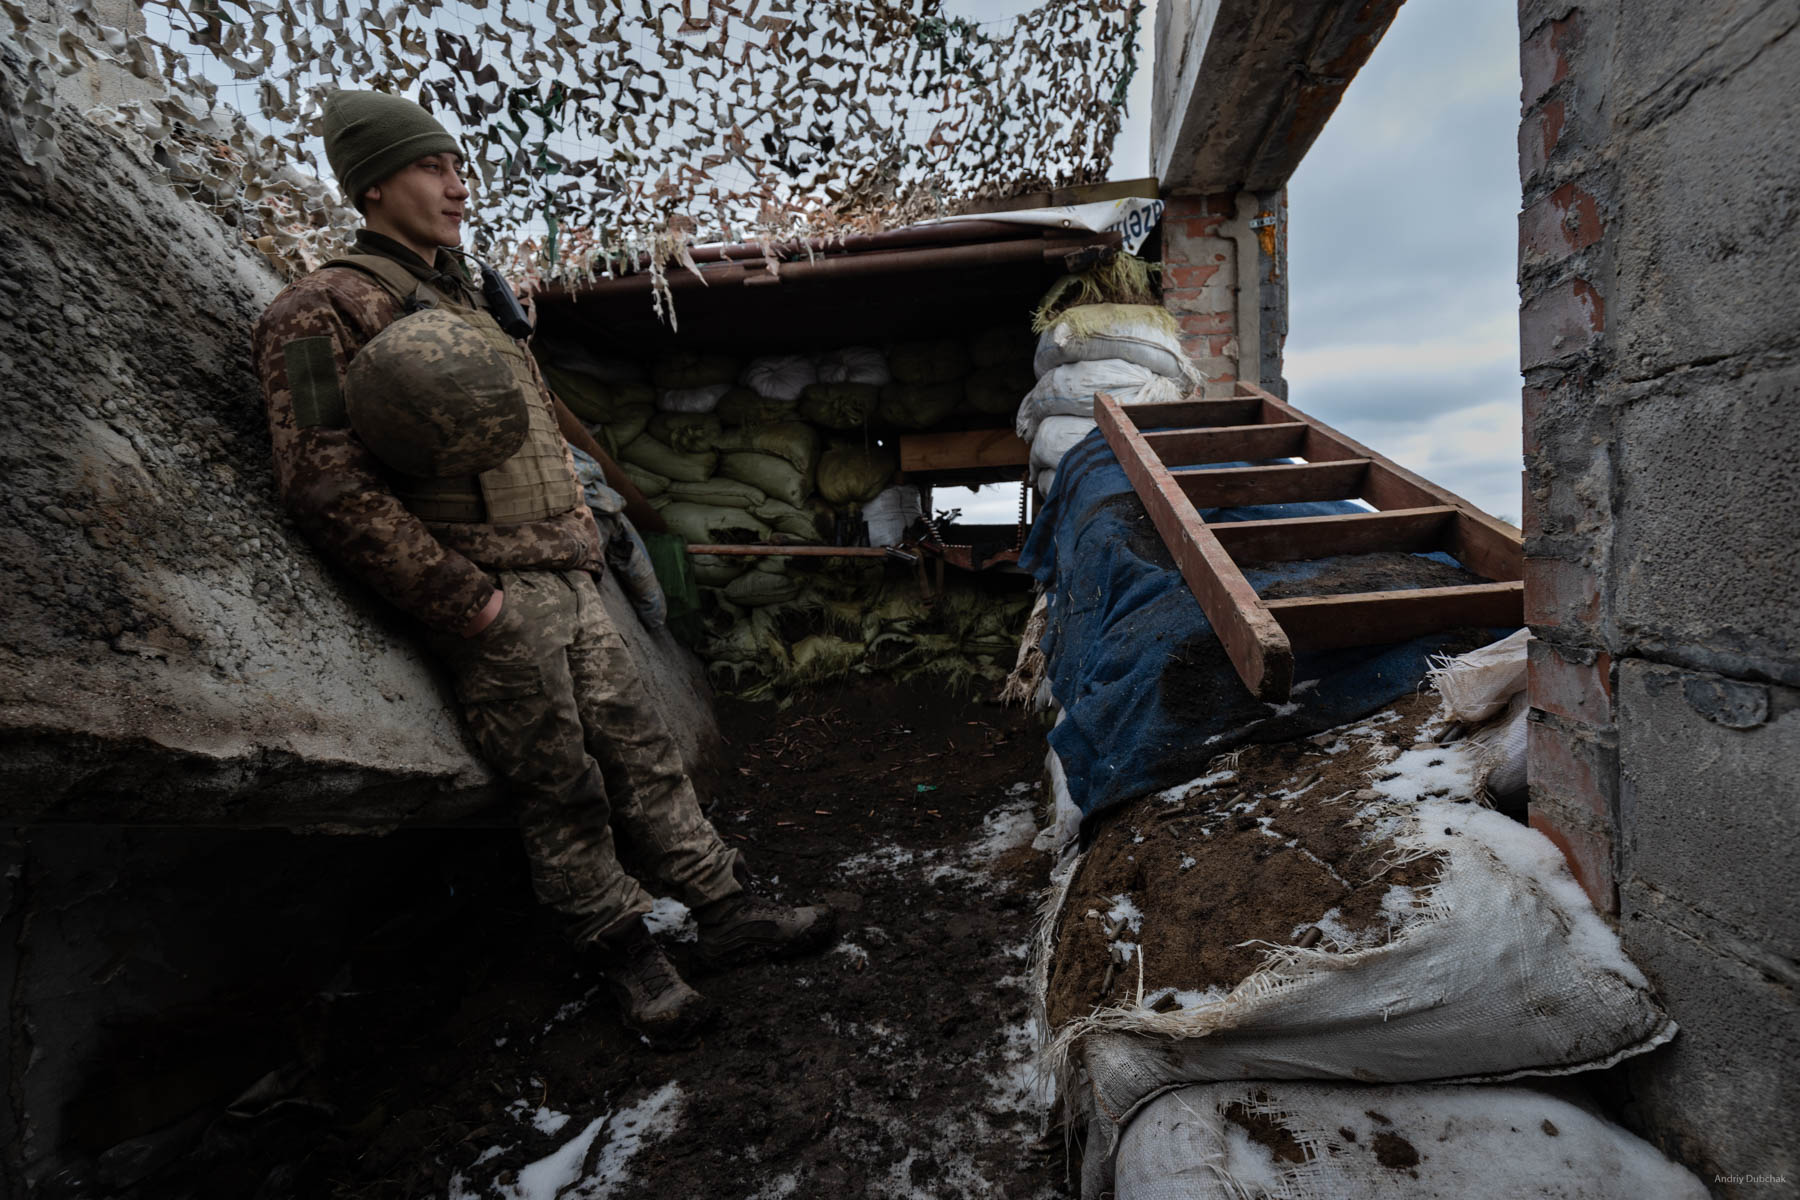 """At one of the front positions, I speak with """"Archie"""", a 20-year-old boy from the region of Nikolayev. He tells us that the militants often try to approach our positions through wood lines at night; our warriors have to respond with fire at regular intervals. Shirokine, March 2018. Video: https://goo.gl/iVAXZB"""